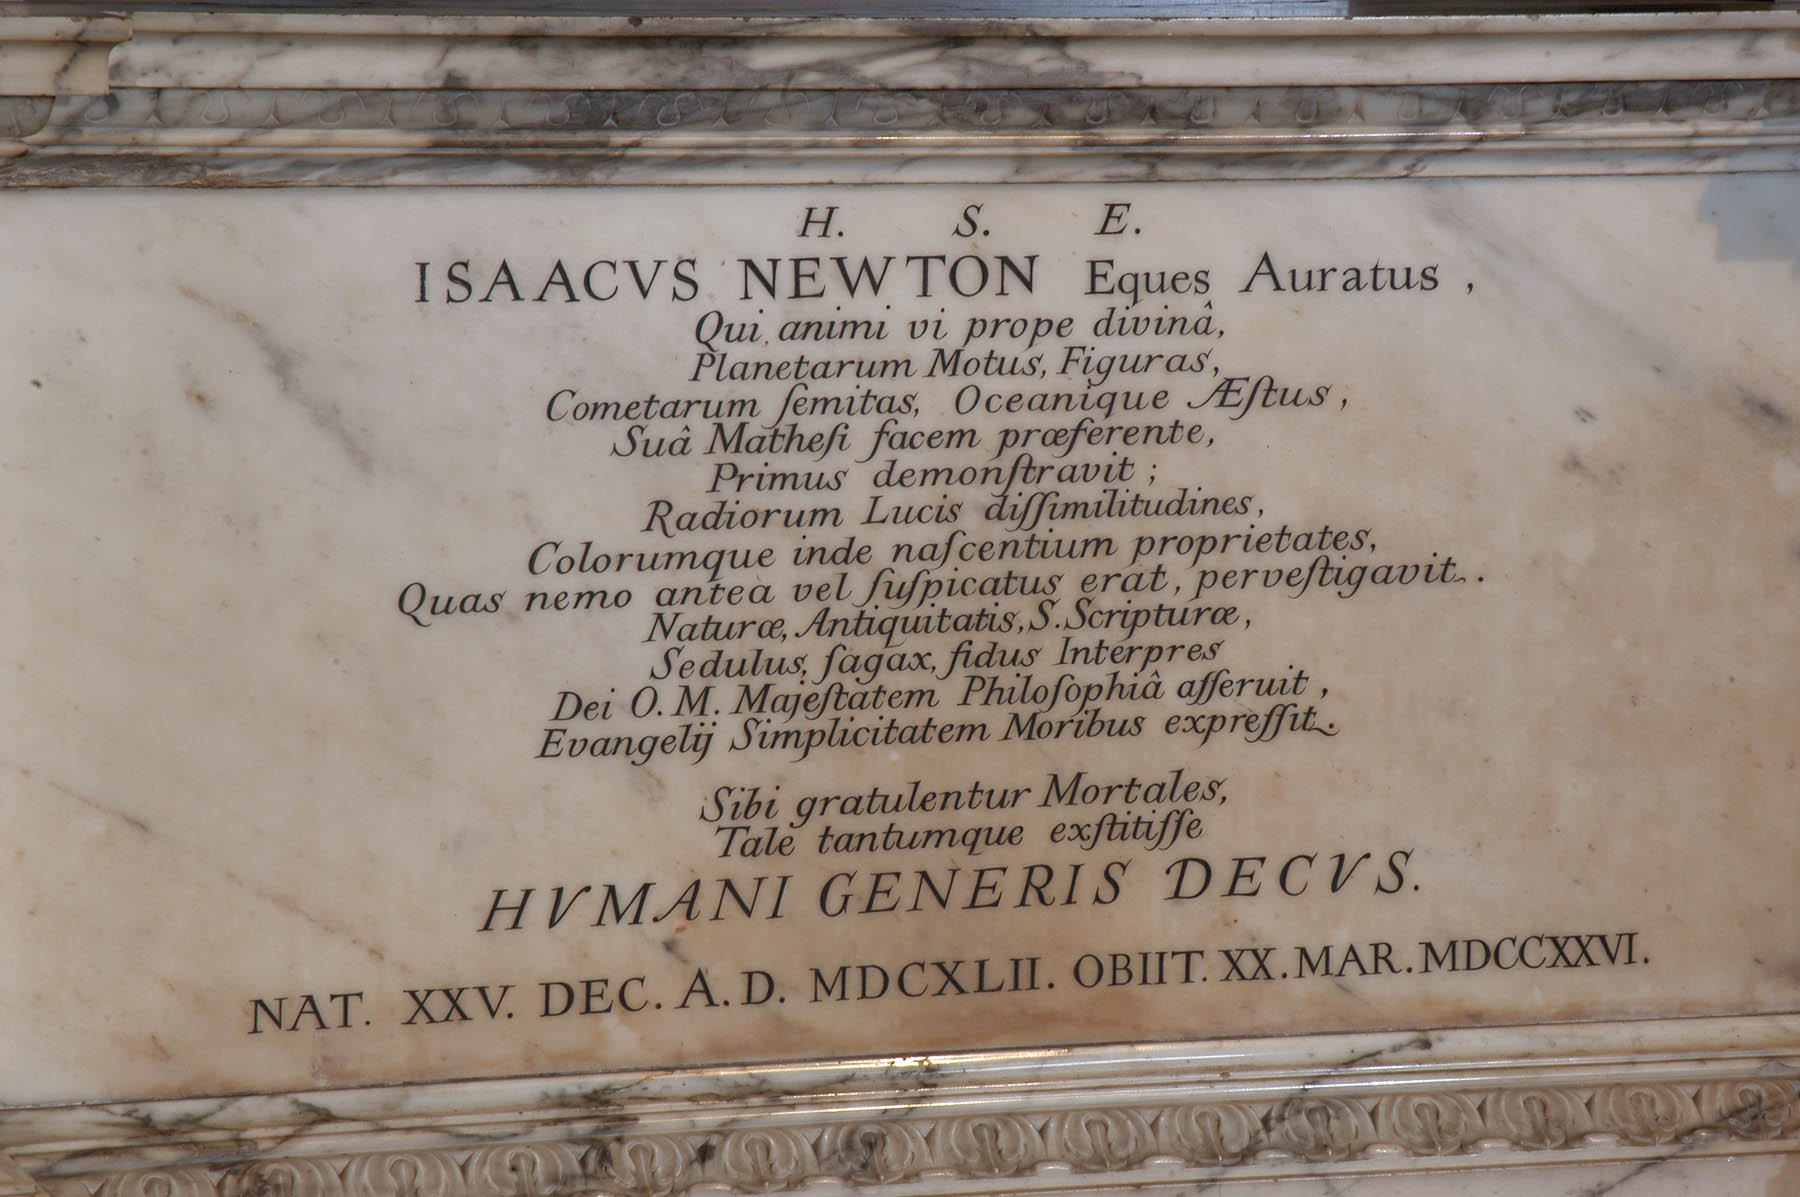 Inscription on Sir Isaac Newton's memorial